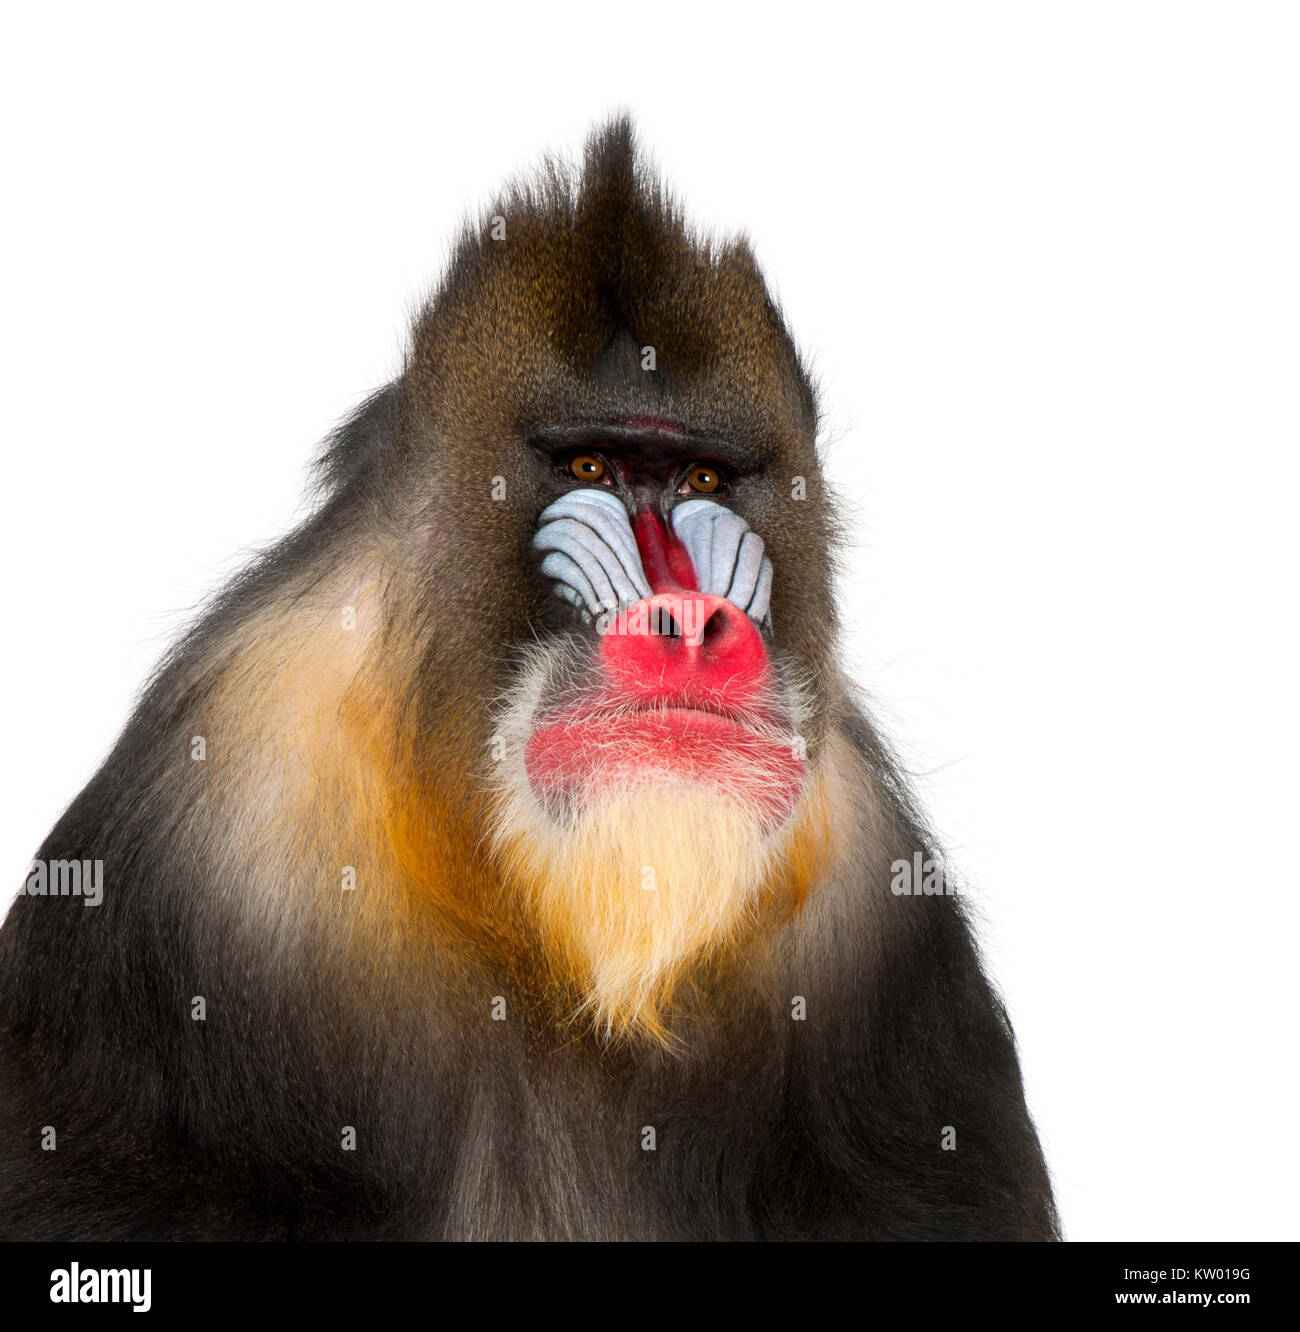 Mandrill - Mandrillus sphinx (22 years old) is a primate of the Old World monkey - Stock Image